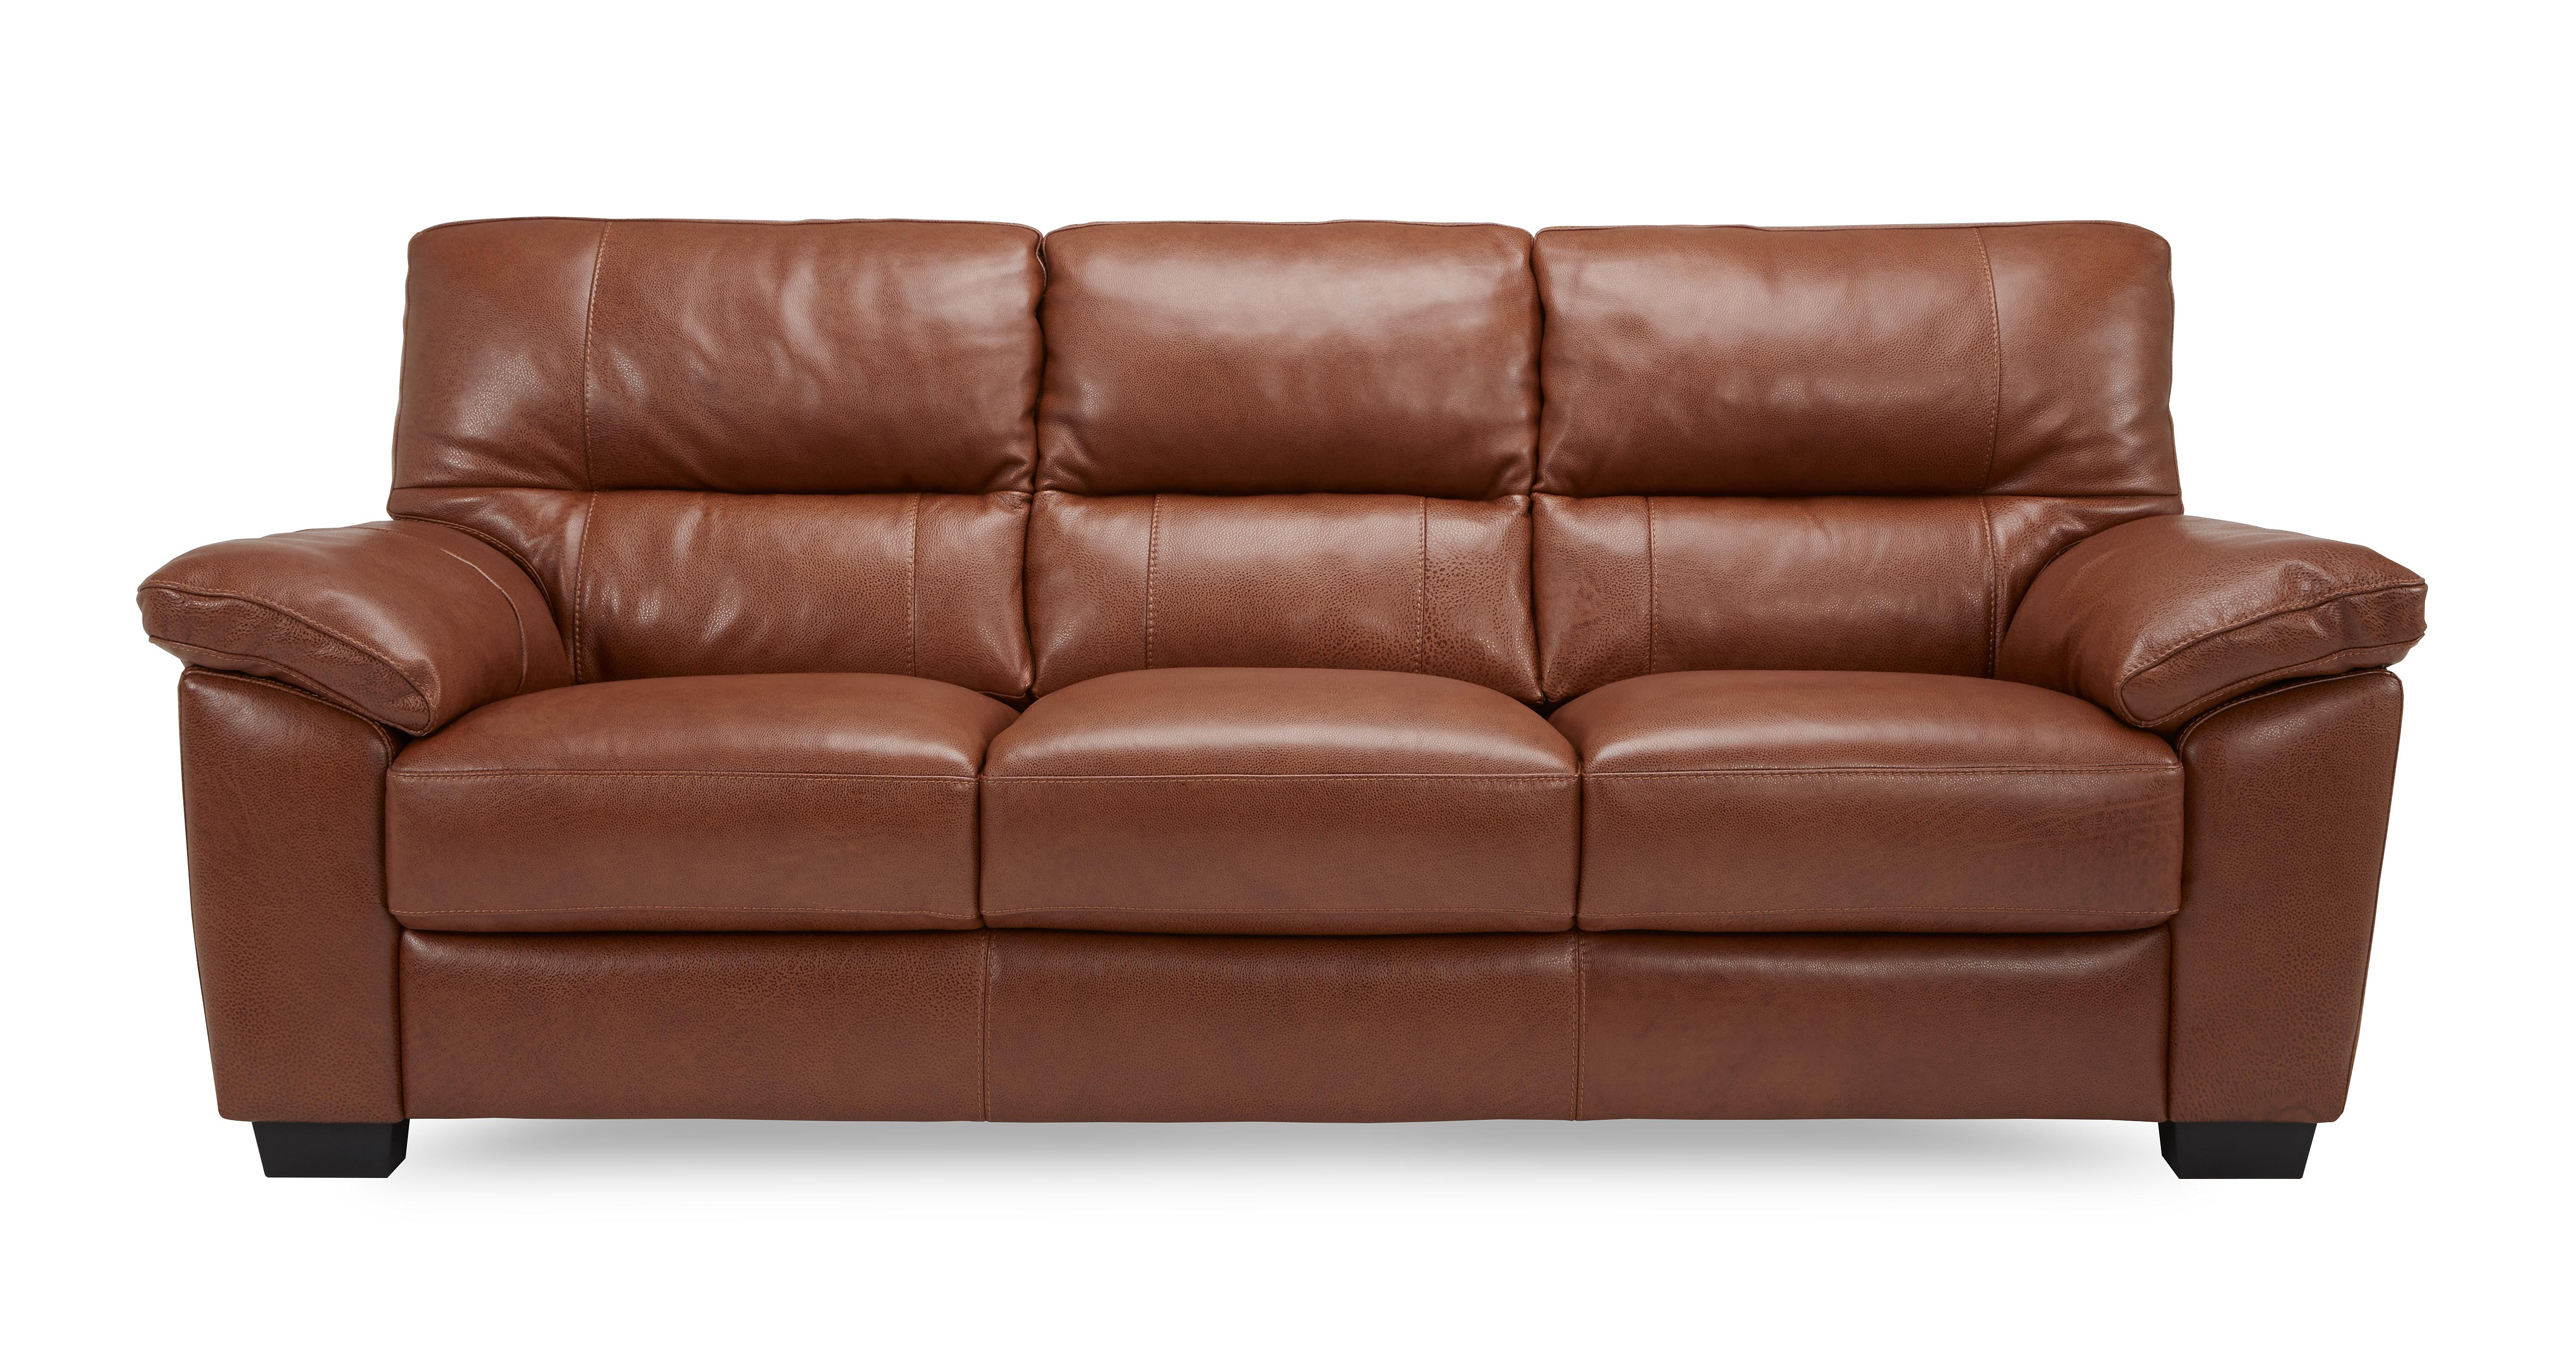 Dalmore Leather And Leather Look 3 Seater Sofa Brazil With